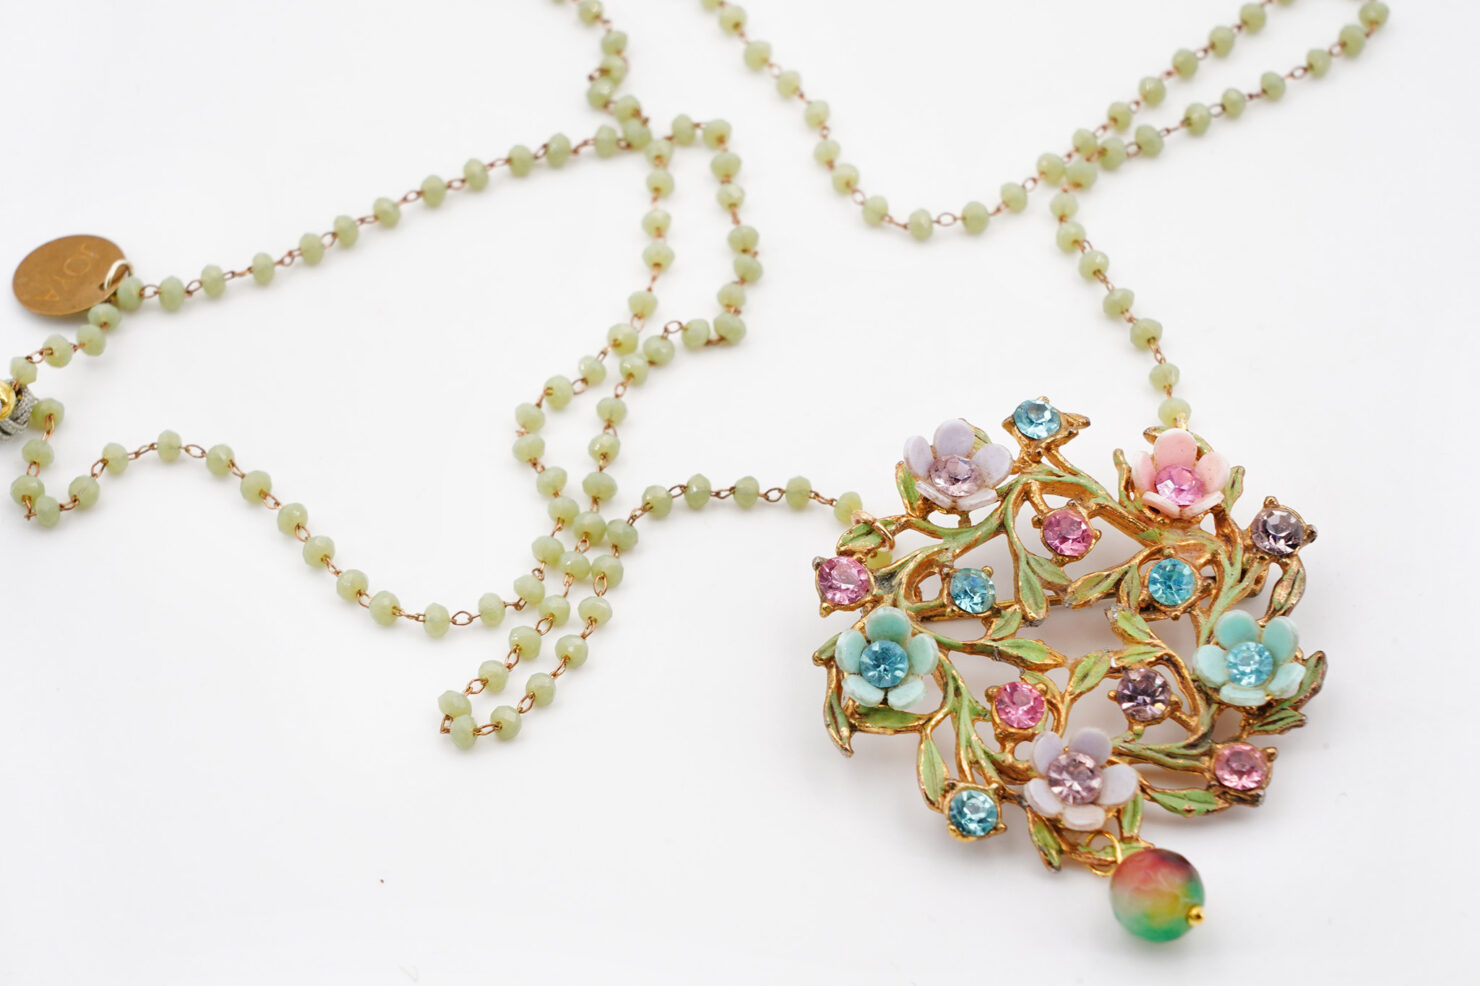 NECKLACE VINTAGE 4- JOYA